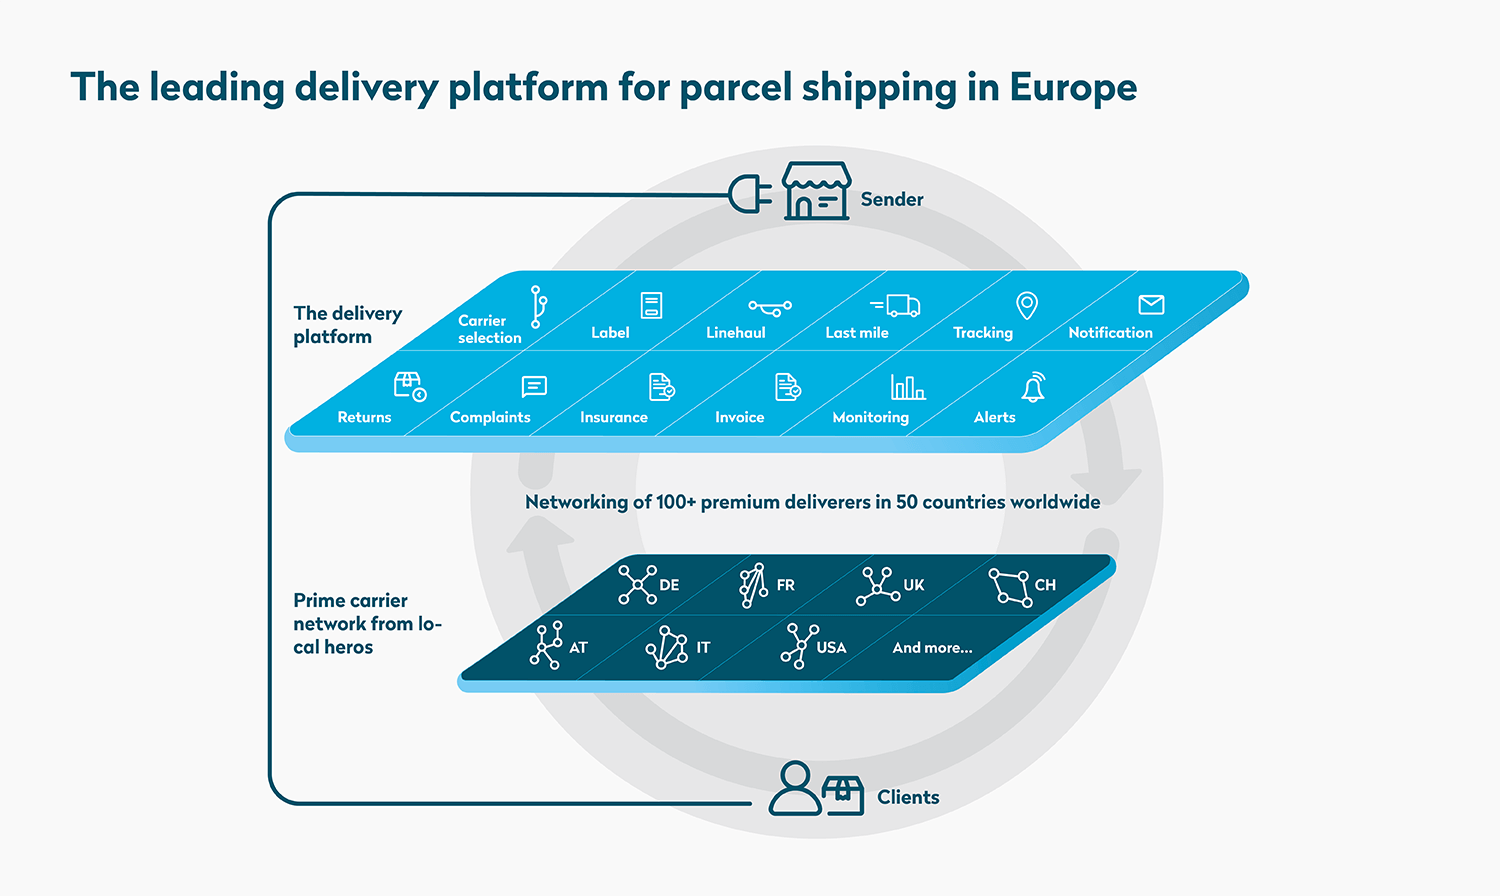 The leading delivery platform for parcel shipping in Europe